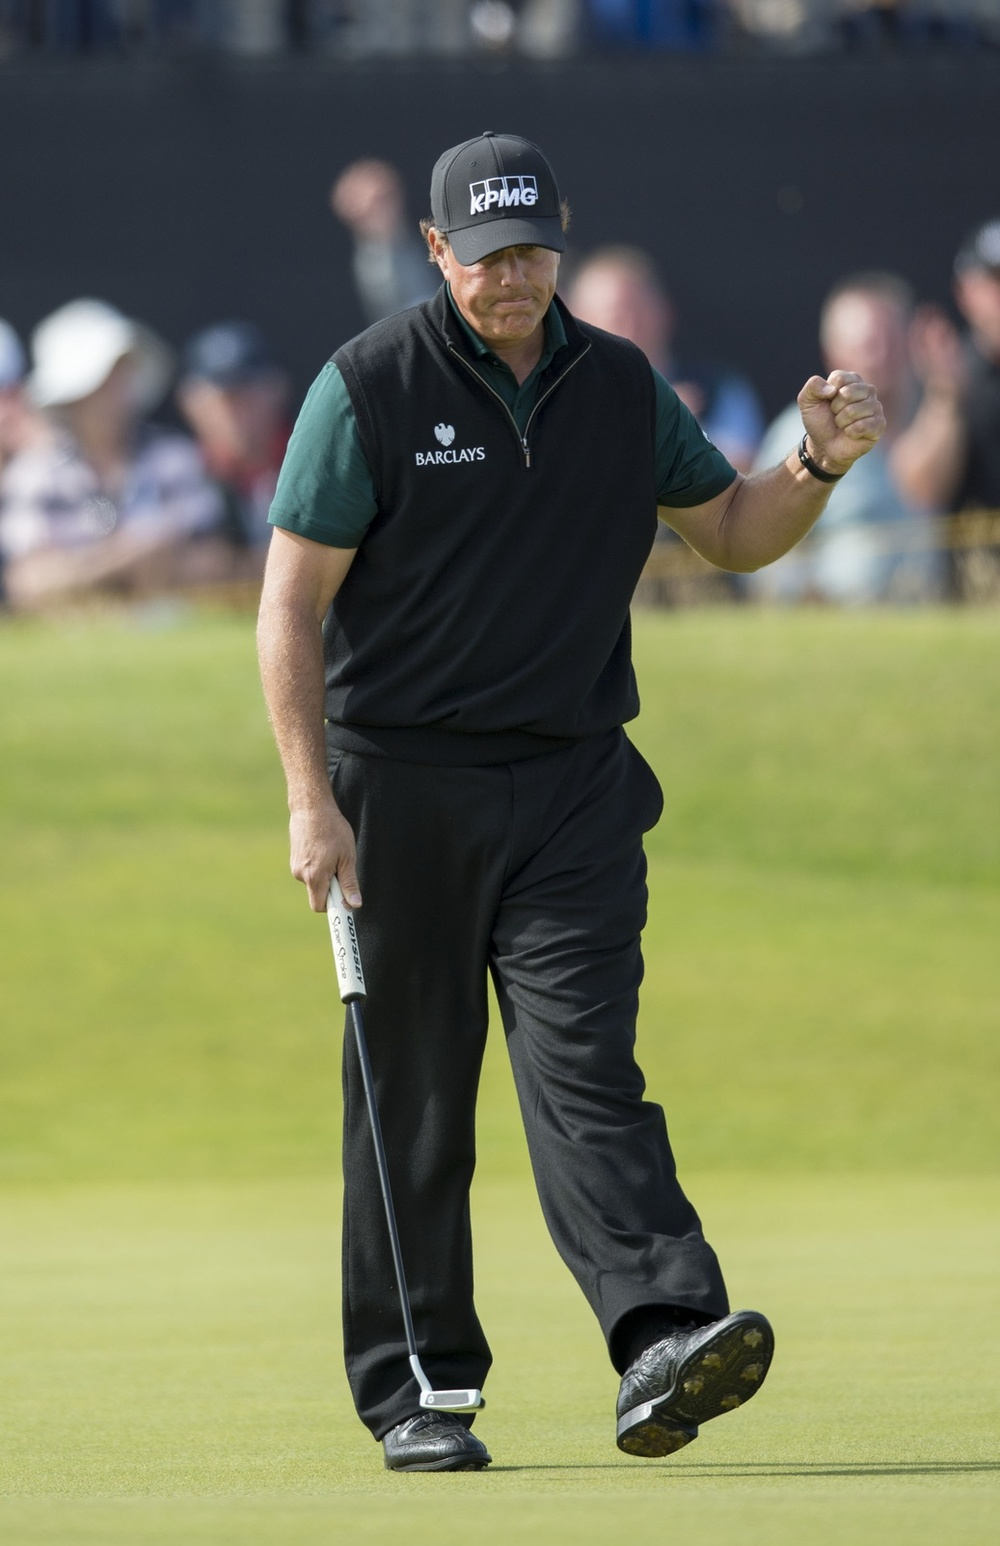 Jul 14, 2016; Troon, Ayrshire, SCT; Phil Mickelson (USA) celebrates after sinking his birdie putt on the par 3 14th during the first round round of the 145th Open Championship golf tournament at Royal Troon Golf Club - Old Course. Mandatory Credit: Ian Rutherford-USA TODAY Sports